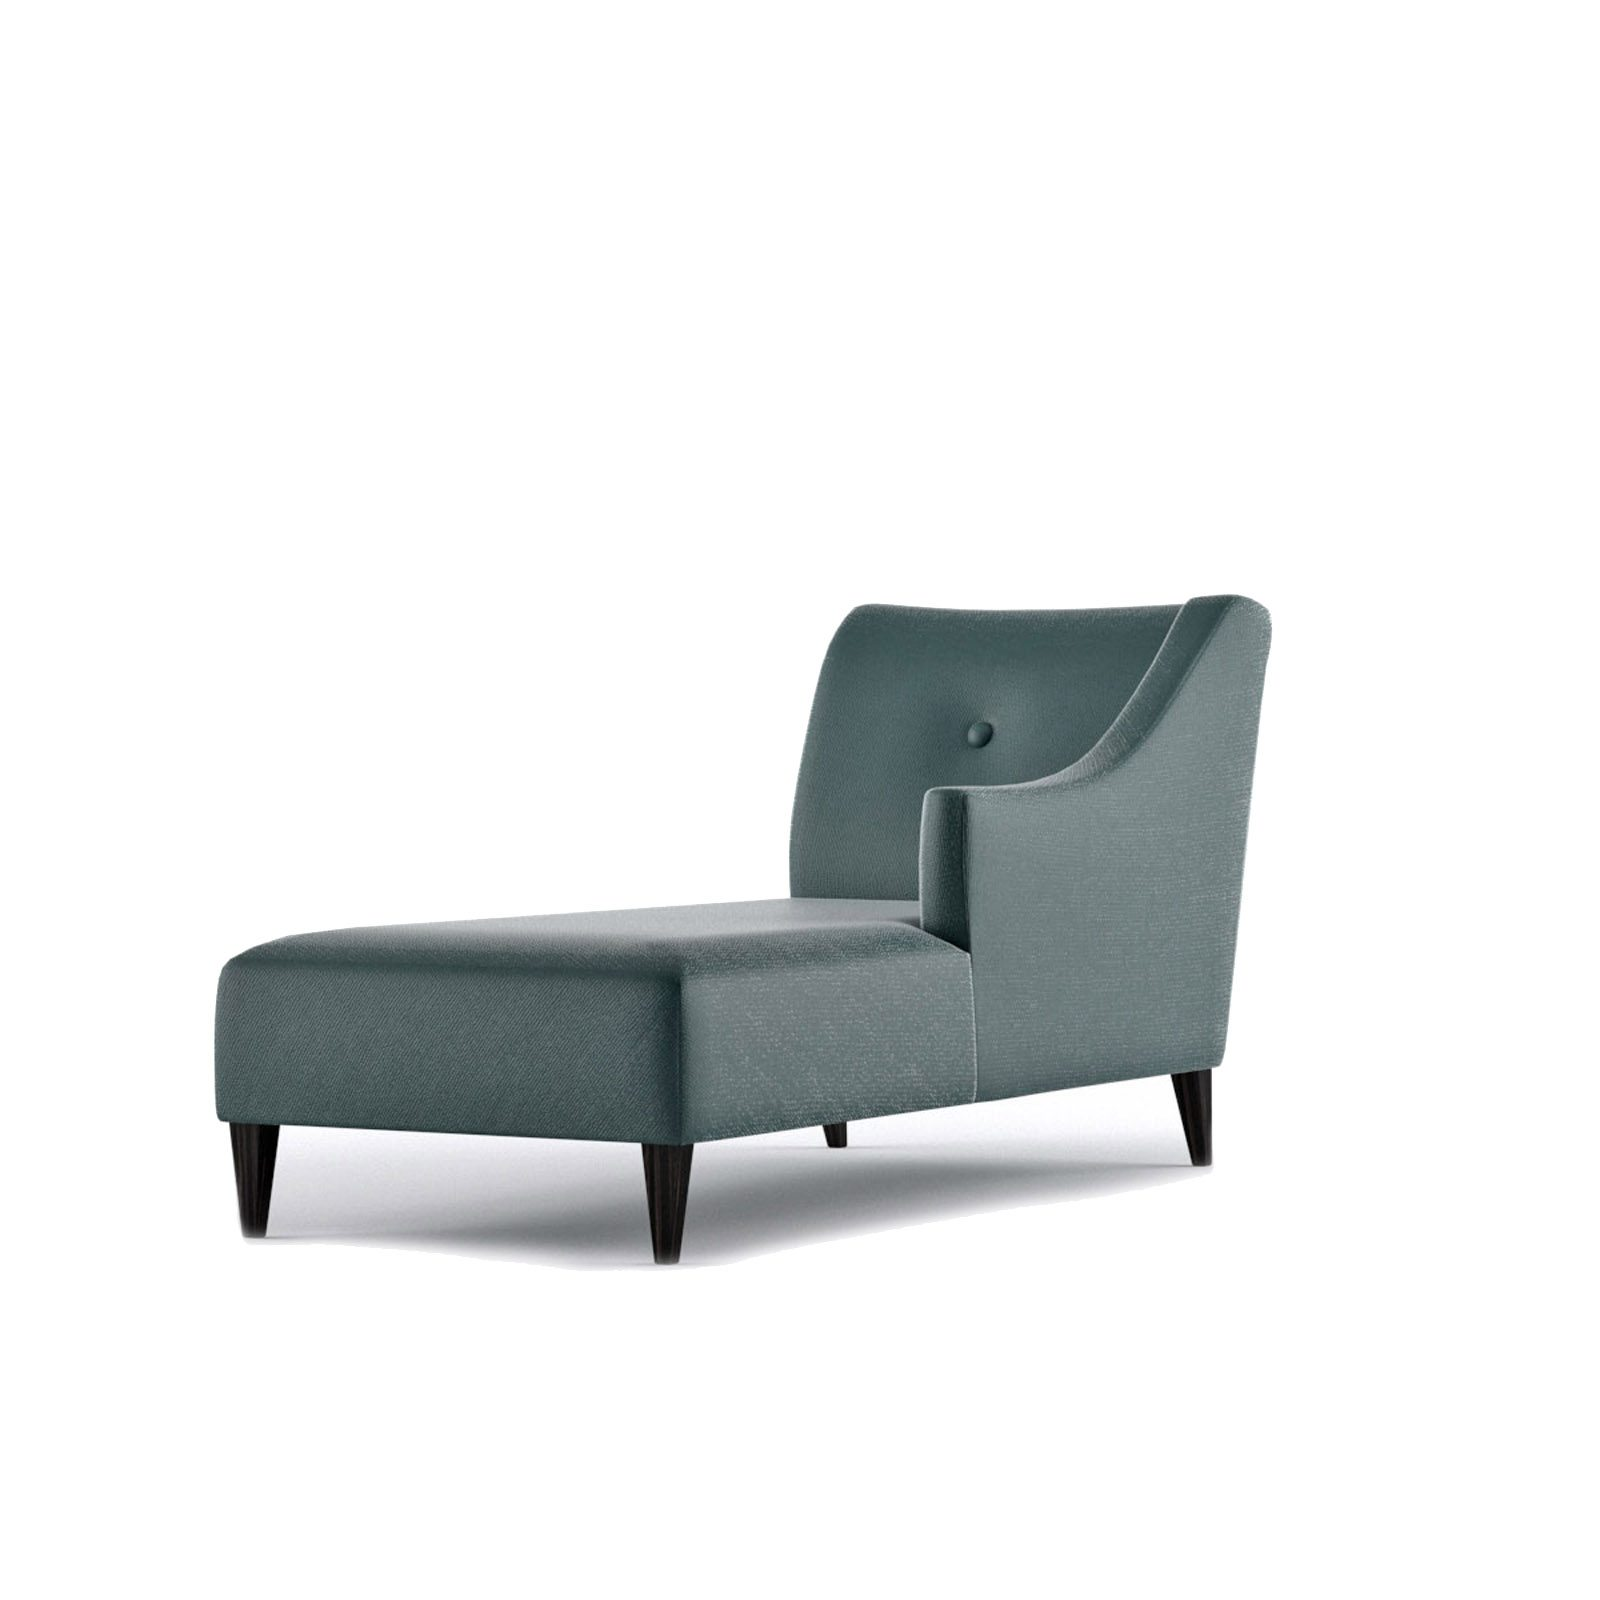 Luxury chaise longues victoria chaise longue bonham for Chaise longue interiores